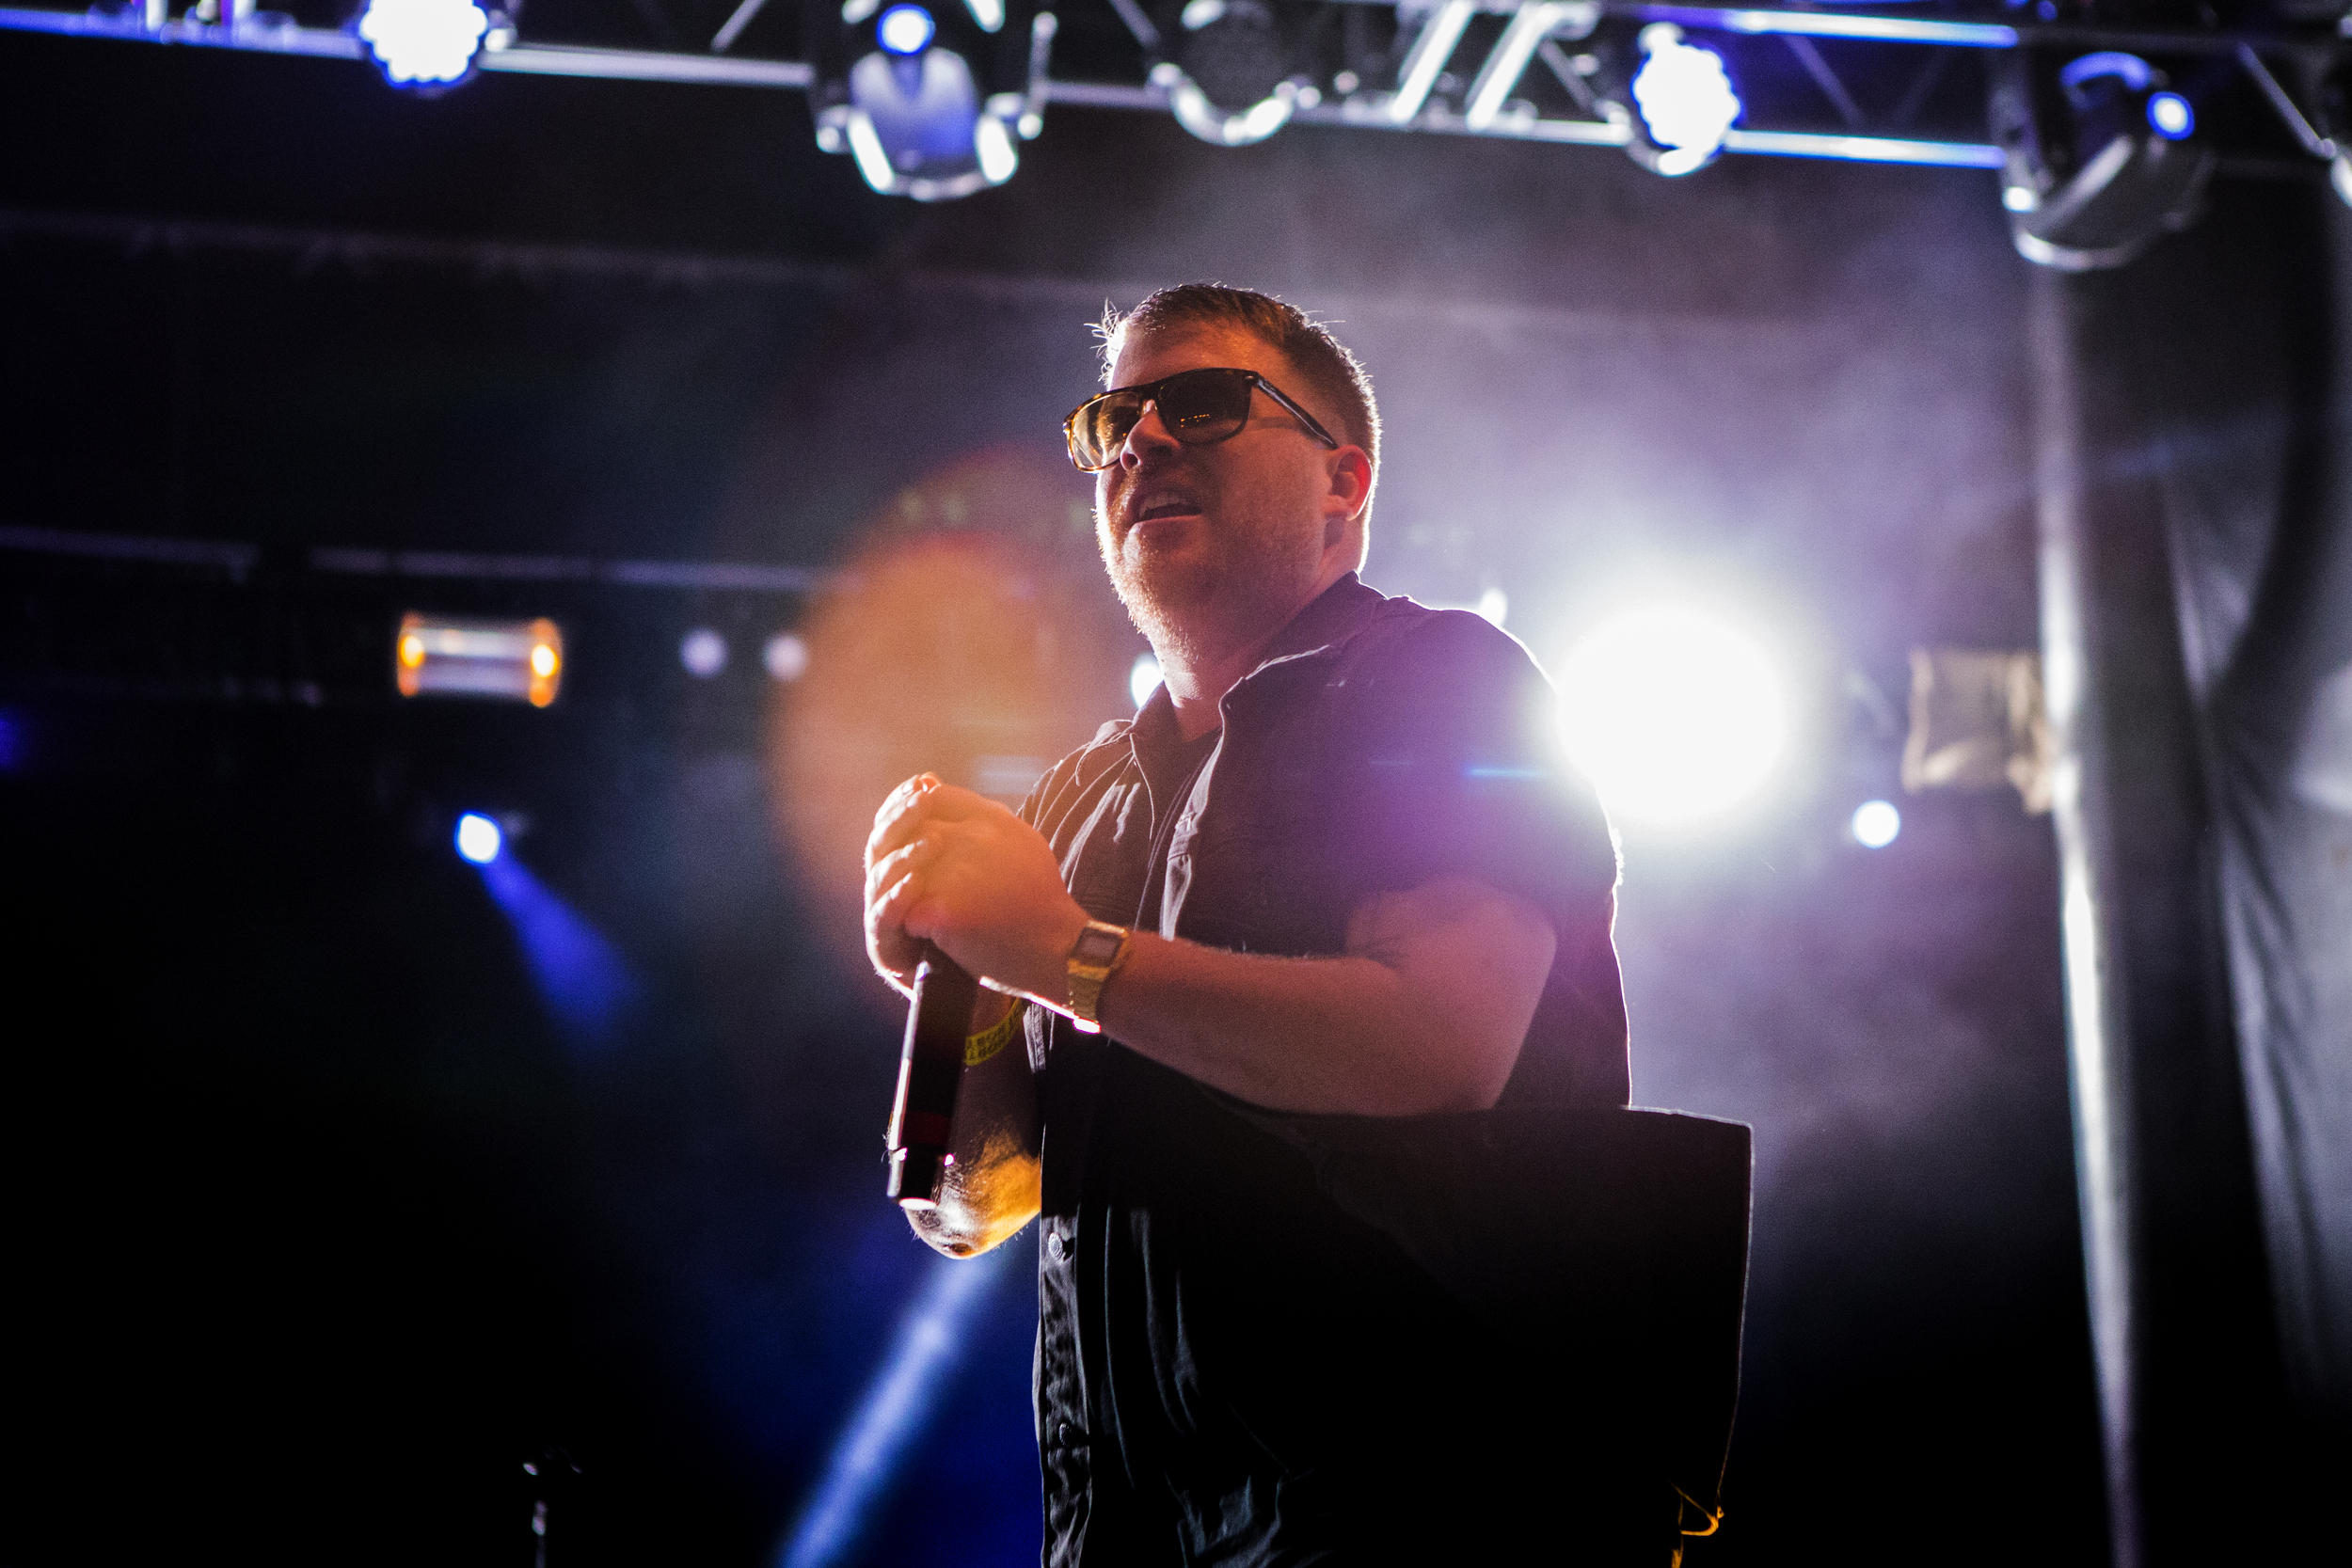 Rapper EI-P of Run the Jewels performs during Brooklyn's Northside Festival at 50 Kent Avenue on June 14, 2015 in Brooklyn, New York. Shot for the  Village Voice / Getty Images .